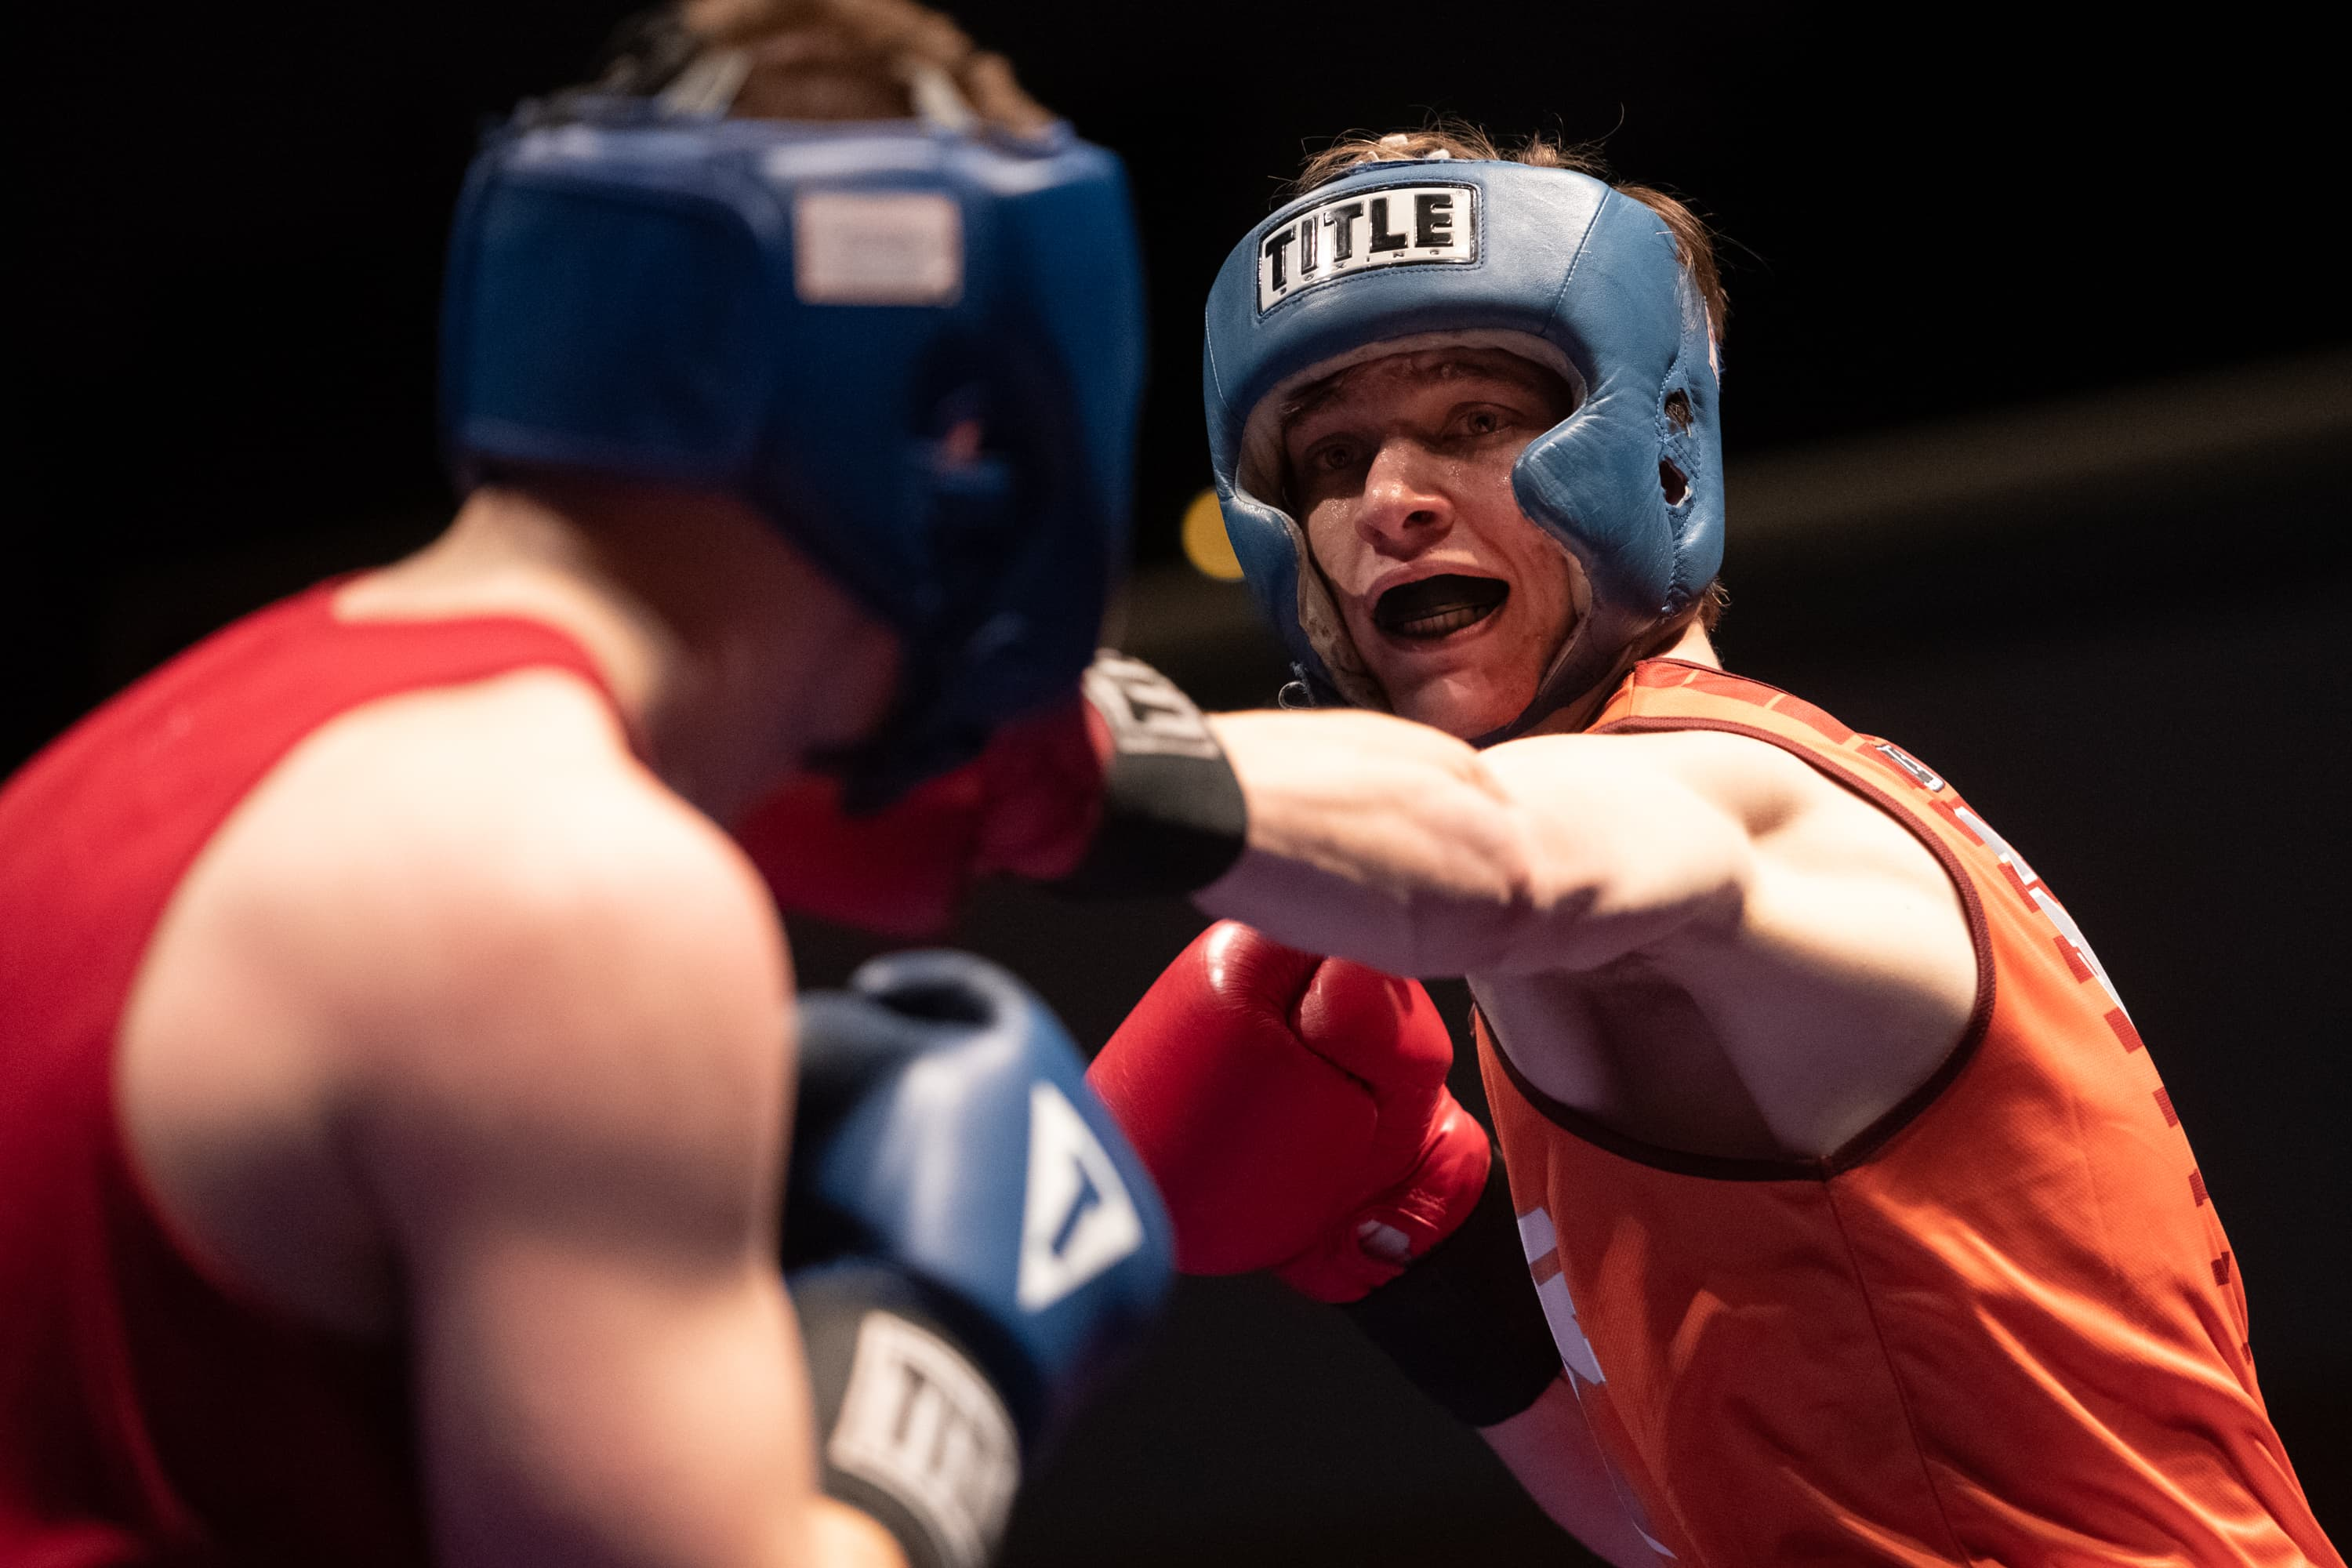 Syracuse graduate student Jeff Frelier fights against Iowa State's Brandon Peck in the championship match in 178-pound bracket at the Goldstein Auditorium on March 24, 2019. Syracuse University hosted the United States Intercollegiate Boxing Association's national championship this past weekend.